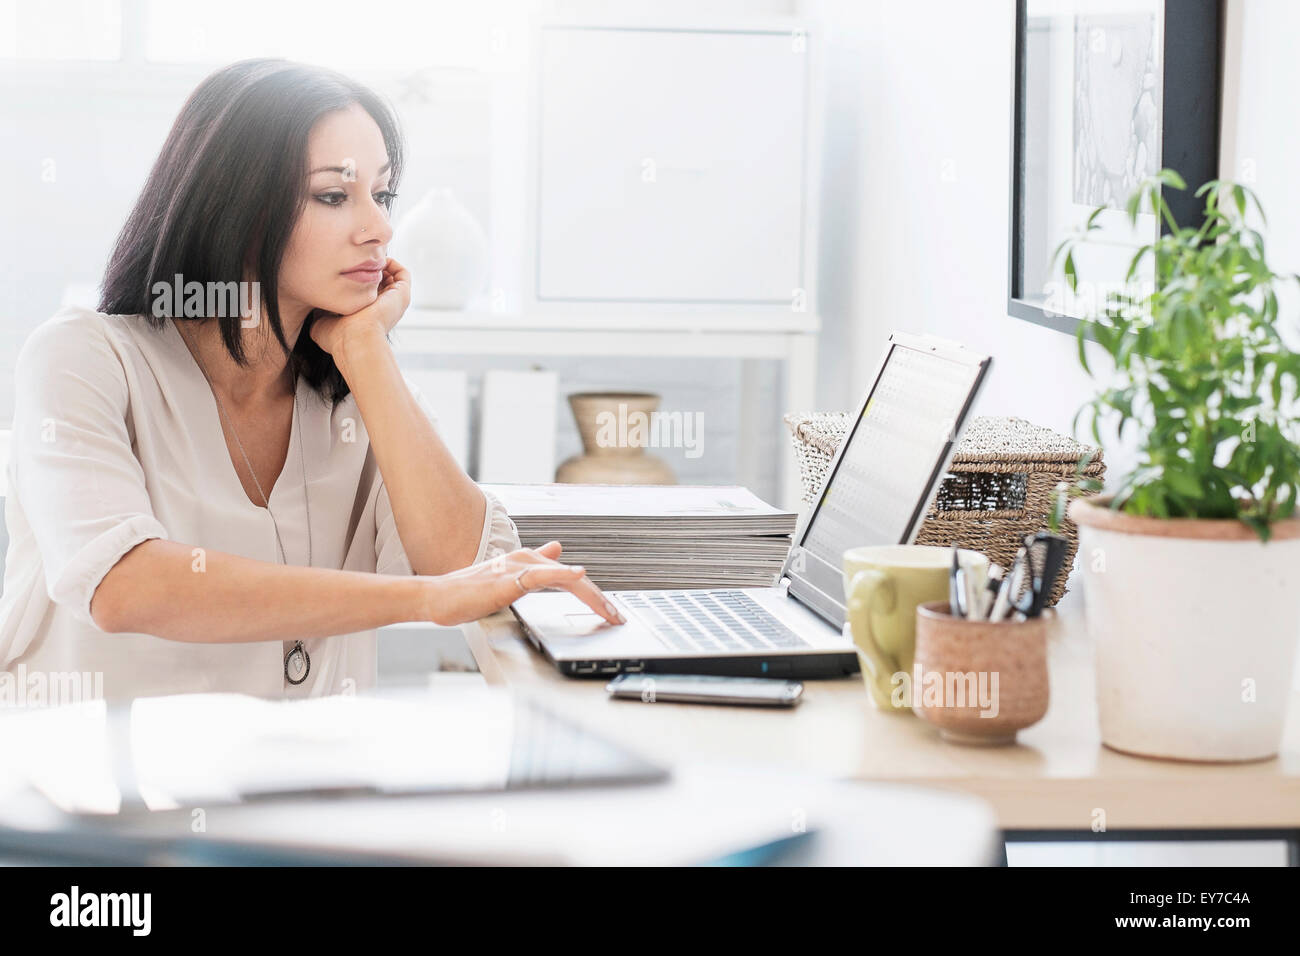 Woman sitting at desk with laptop - Stock Image